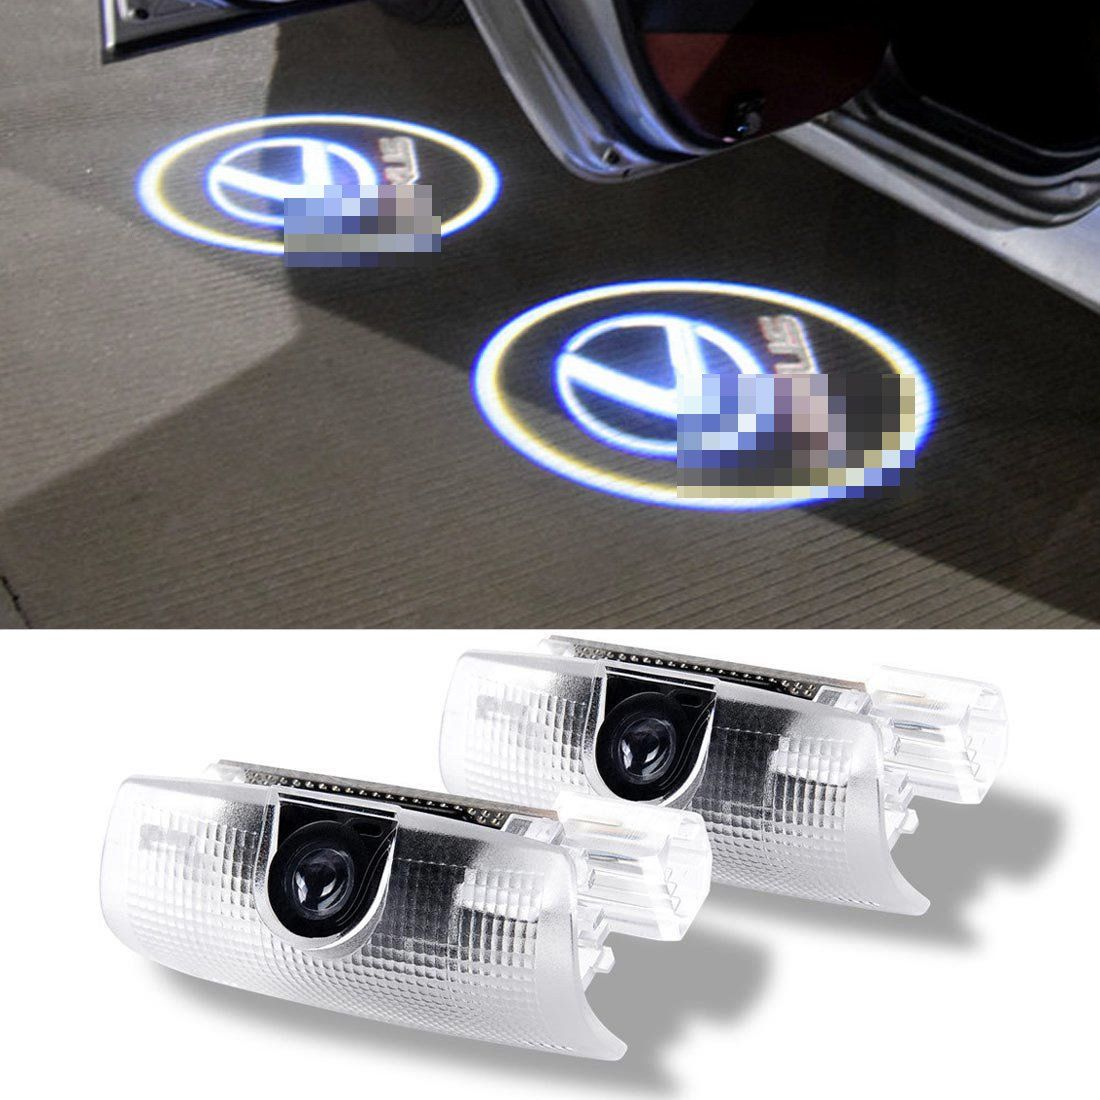 Karono 2pcs Car Door Led Logo Projector Welcome Courtesy Ghost